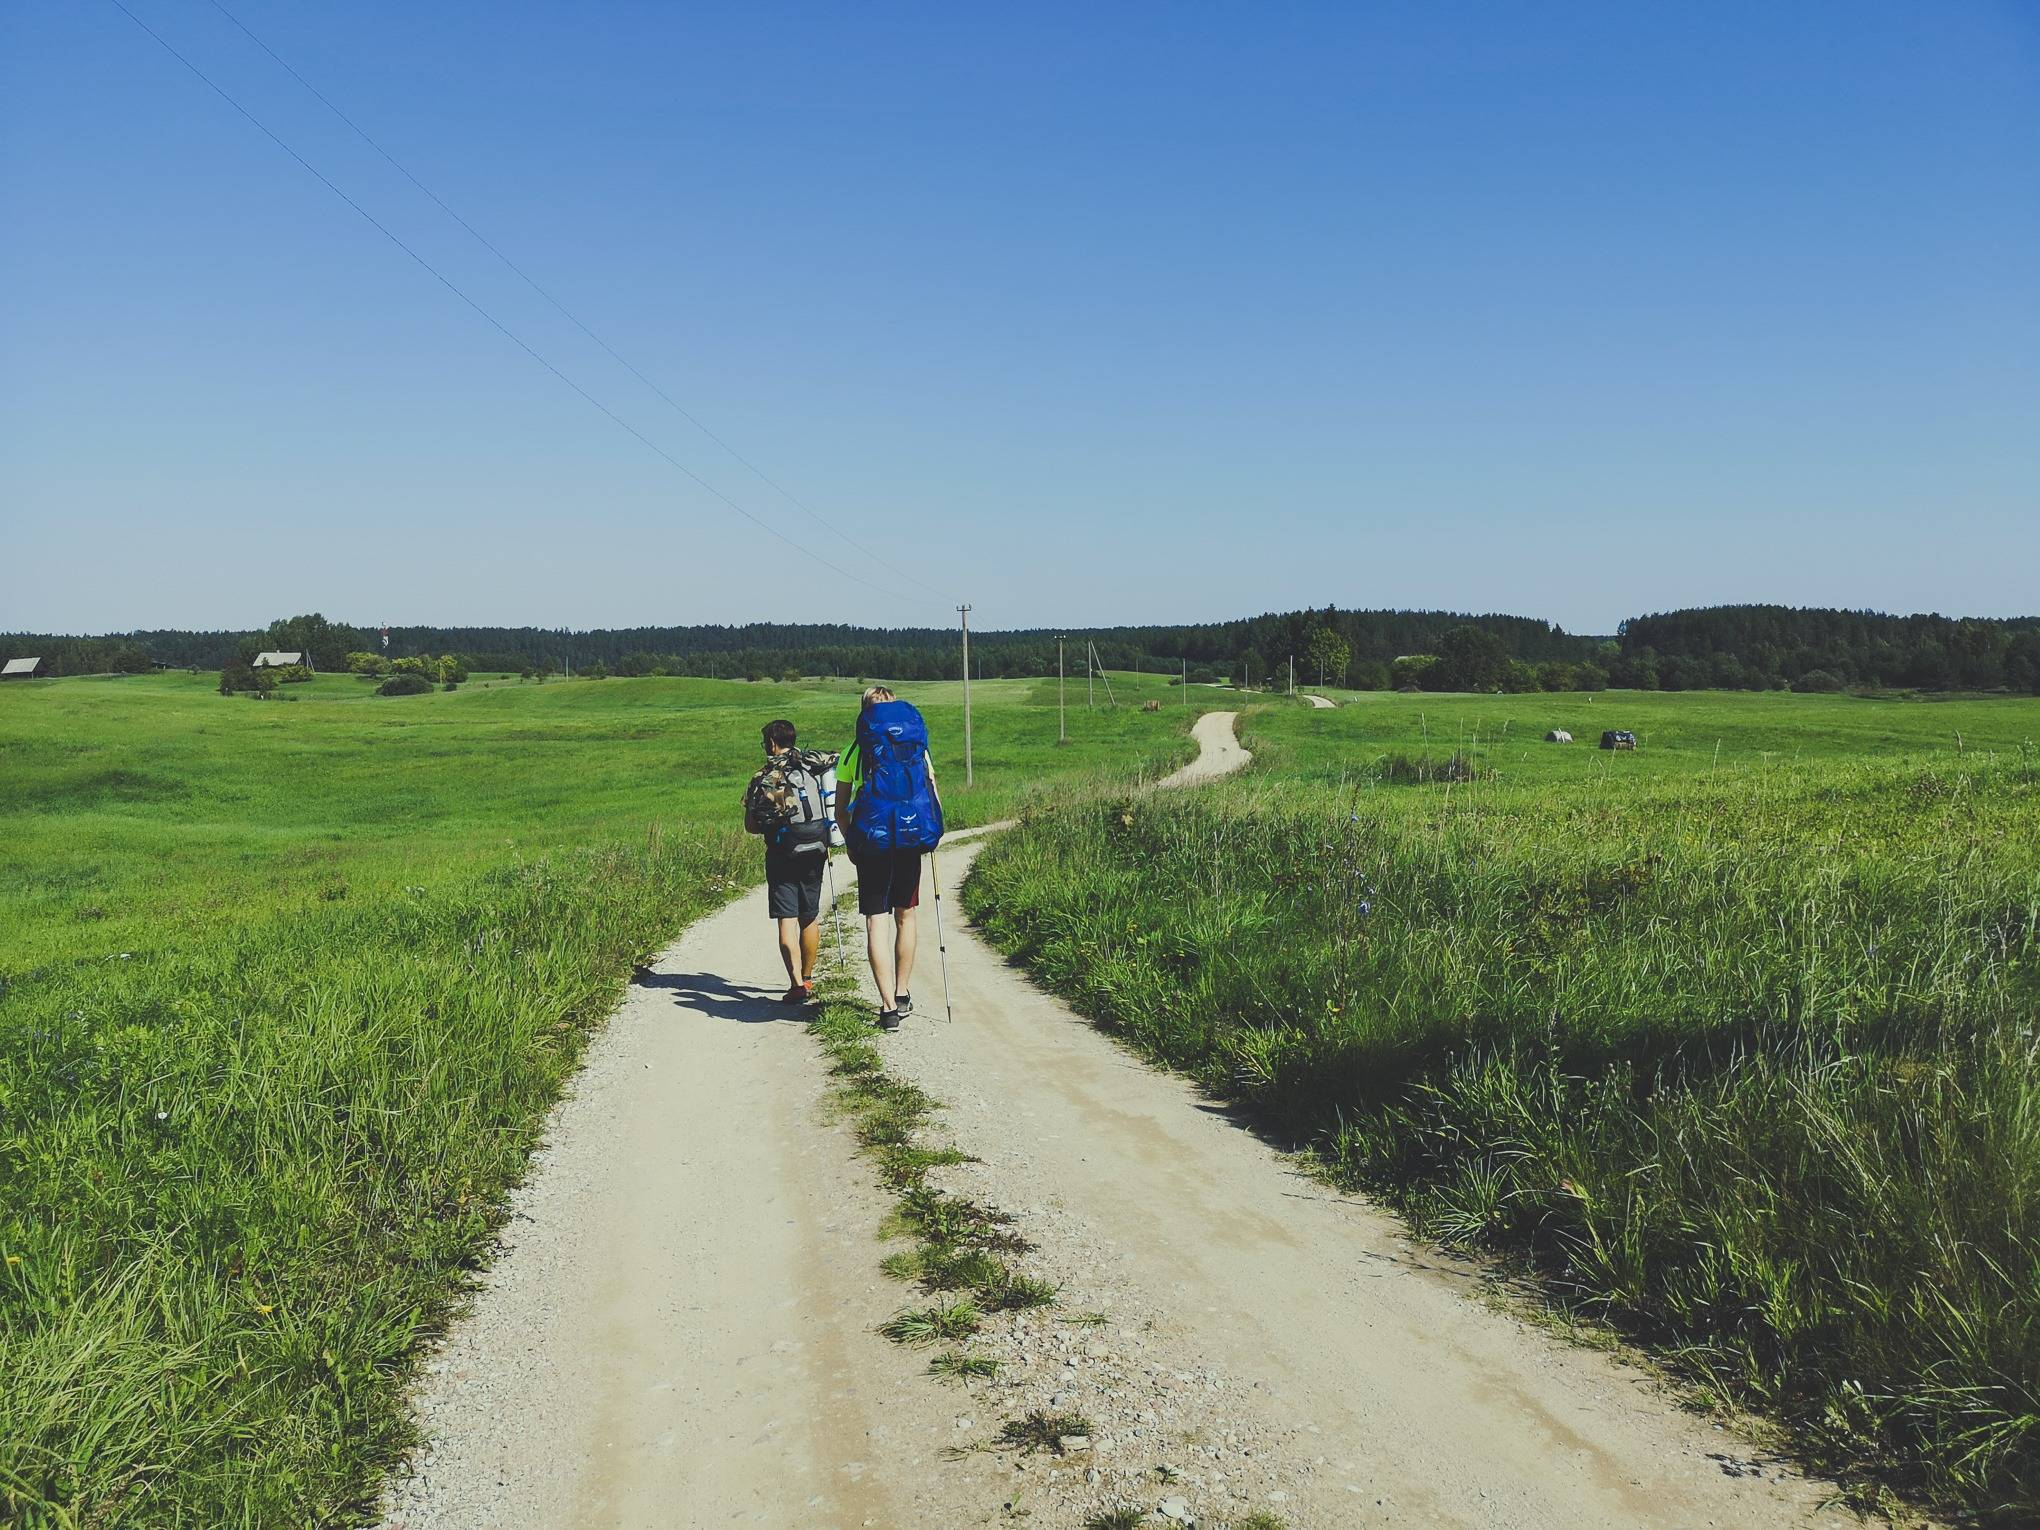 Walking through country side near Lakajai Lakes in Labanoras regional Park, Lithuania. Photo Alis Monte [CC BY-SA 4.0], via Connecting the Dots